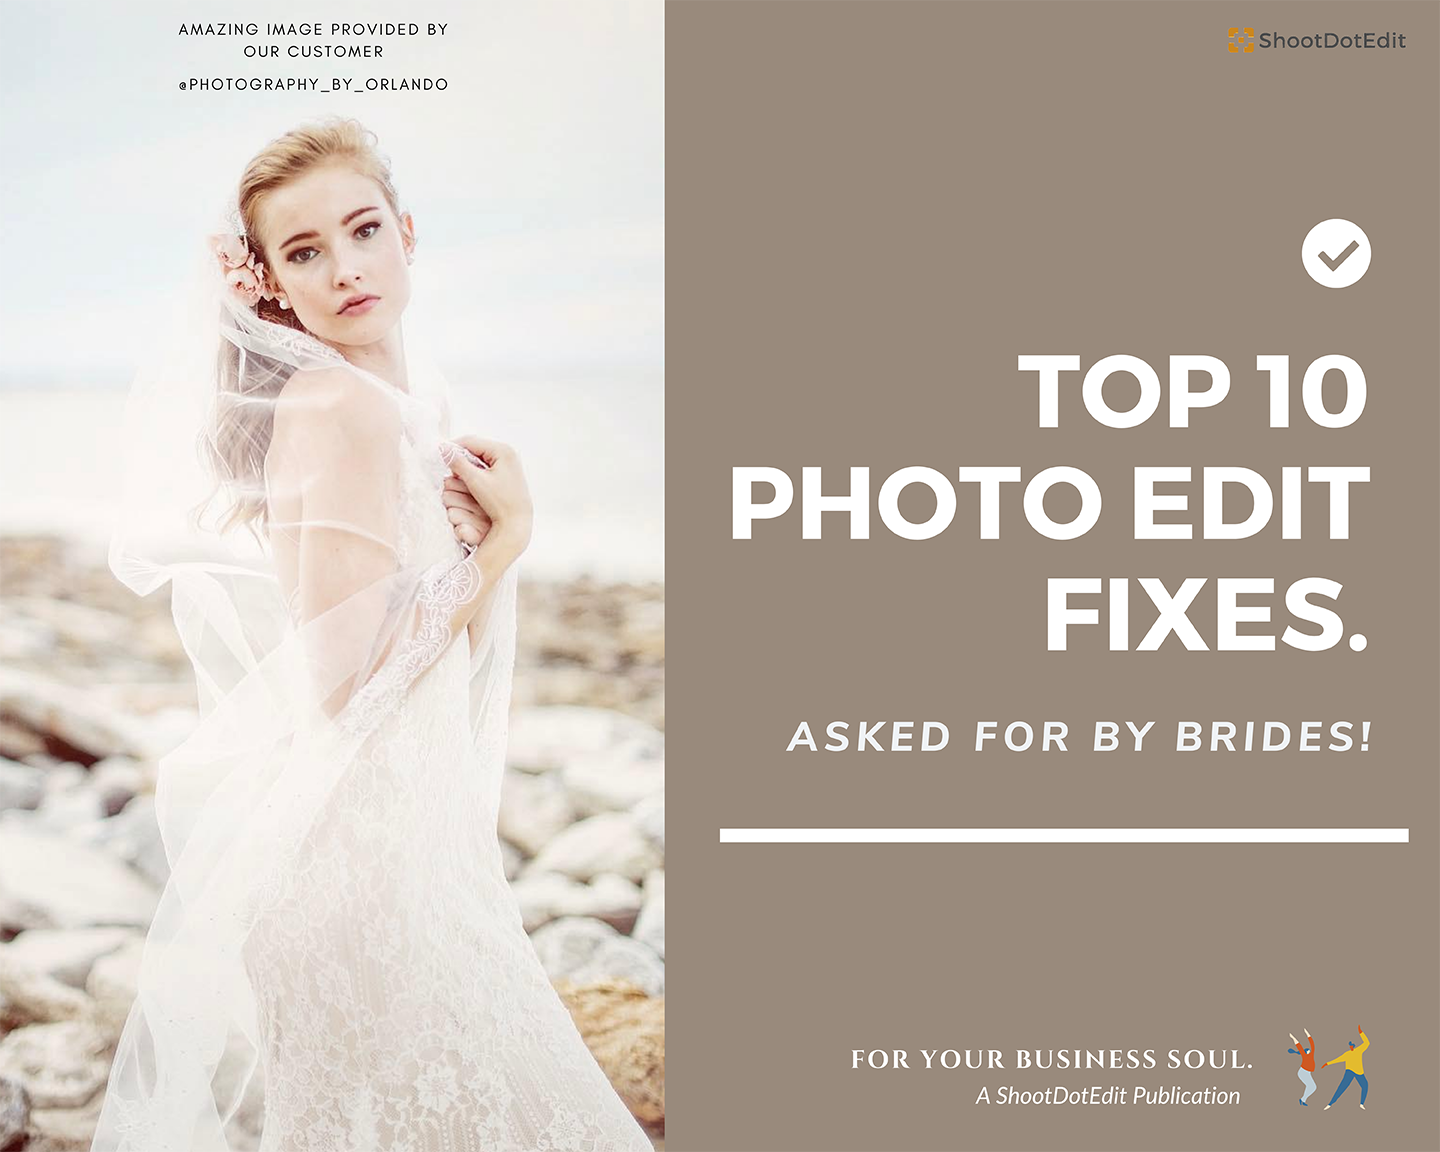 Top 10 Photo Edit Fixes Asked For by Brides